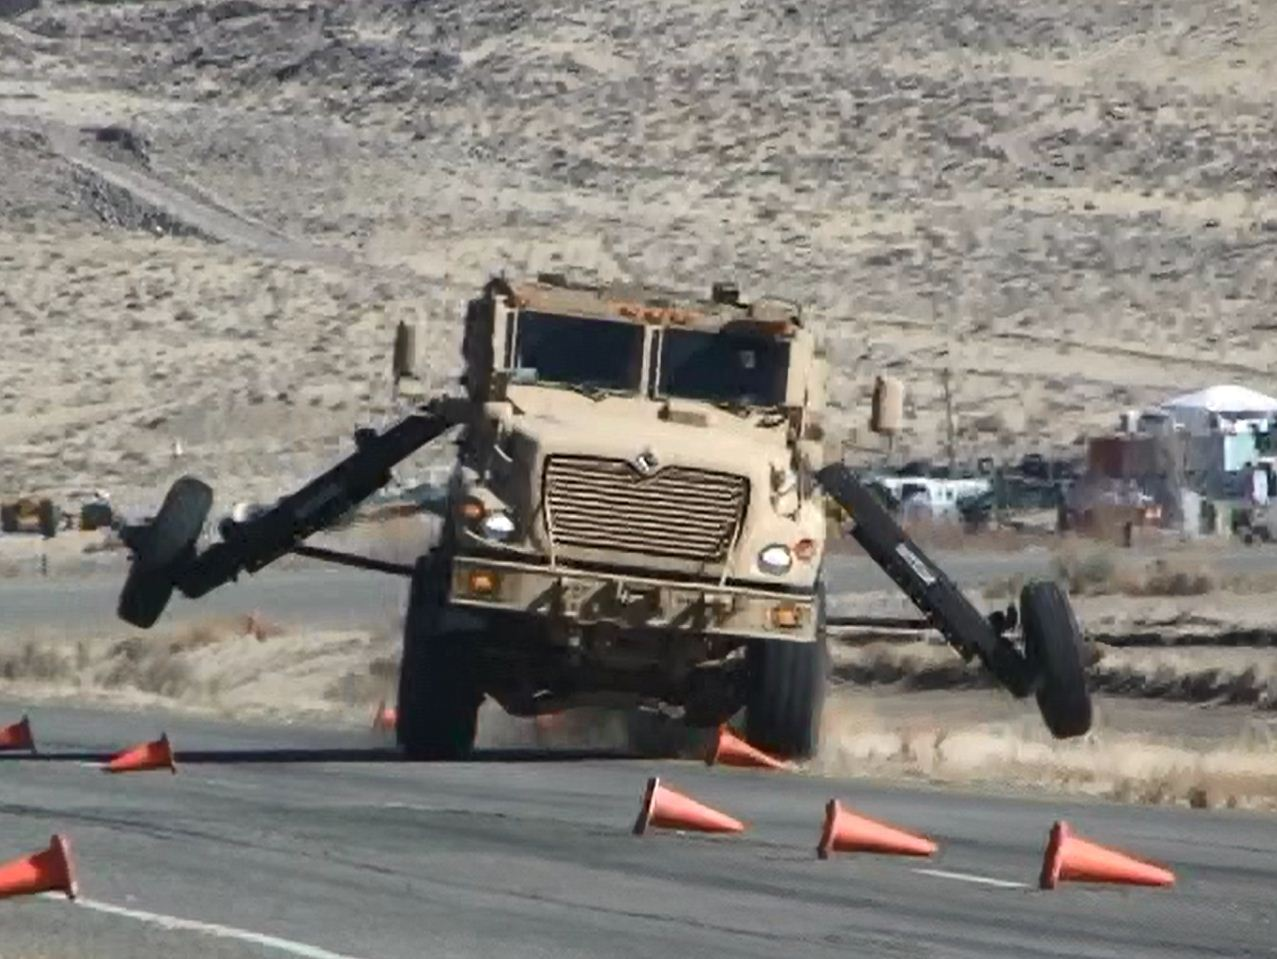 A brand-new MRAP feature